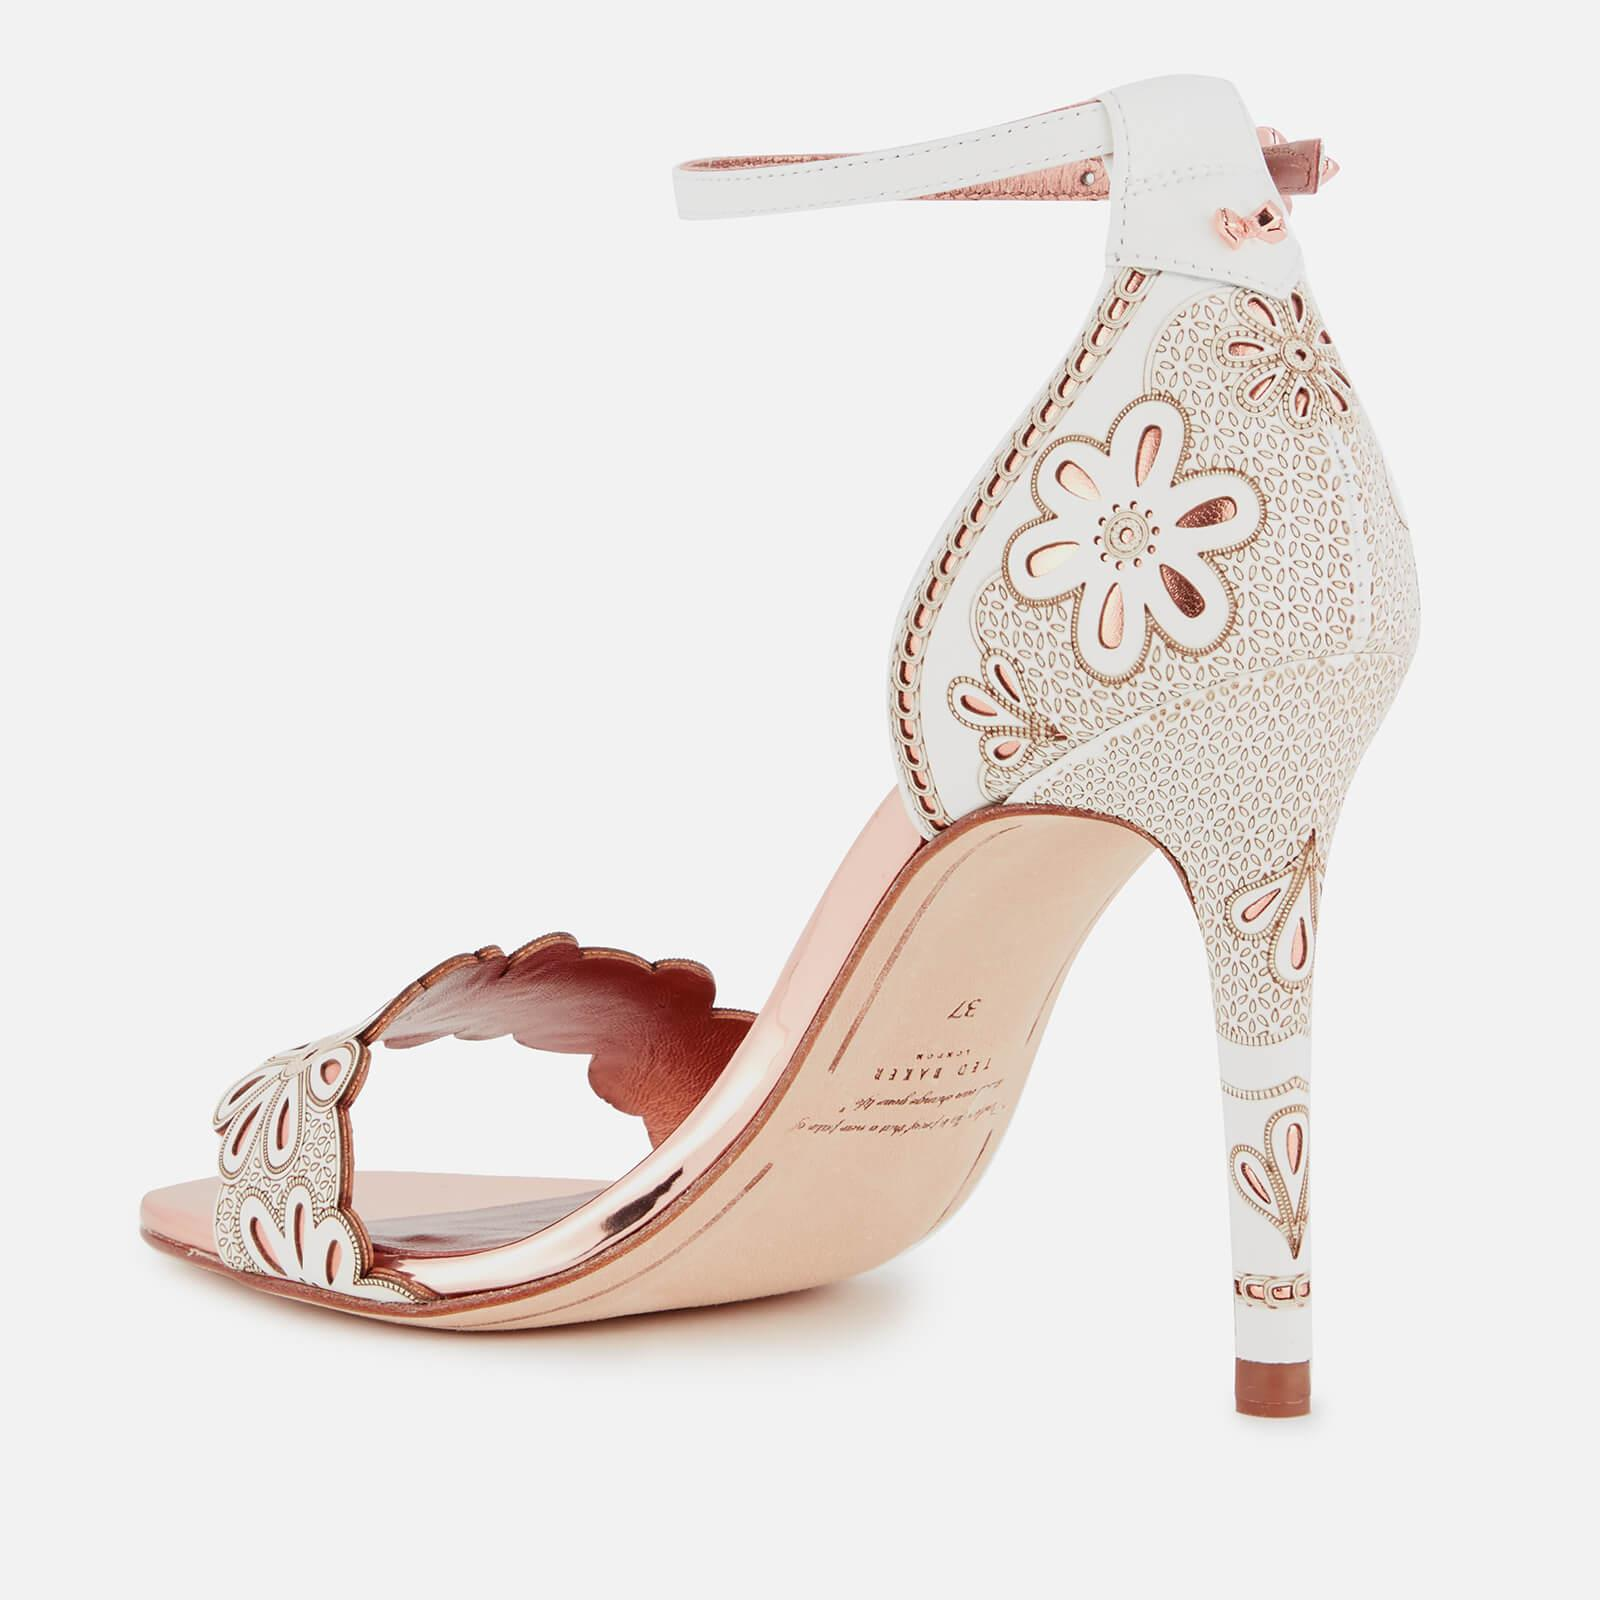 bb5ef89d2d4a Ted Baker Cimaa Leather Barely There Heeled Sandals in White - Lyst